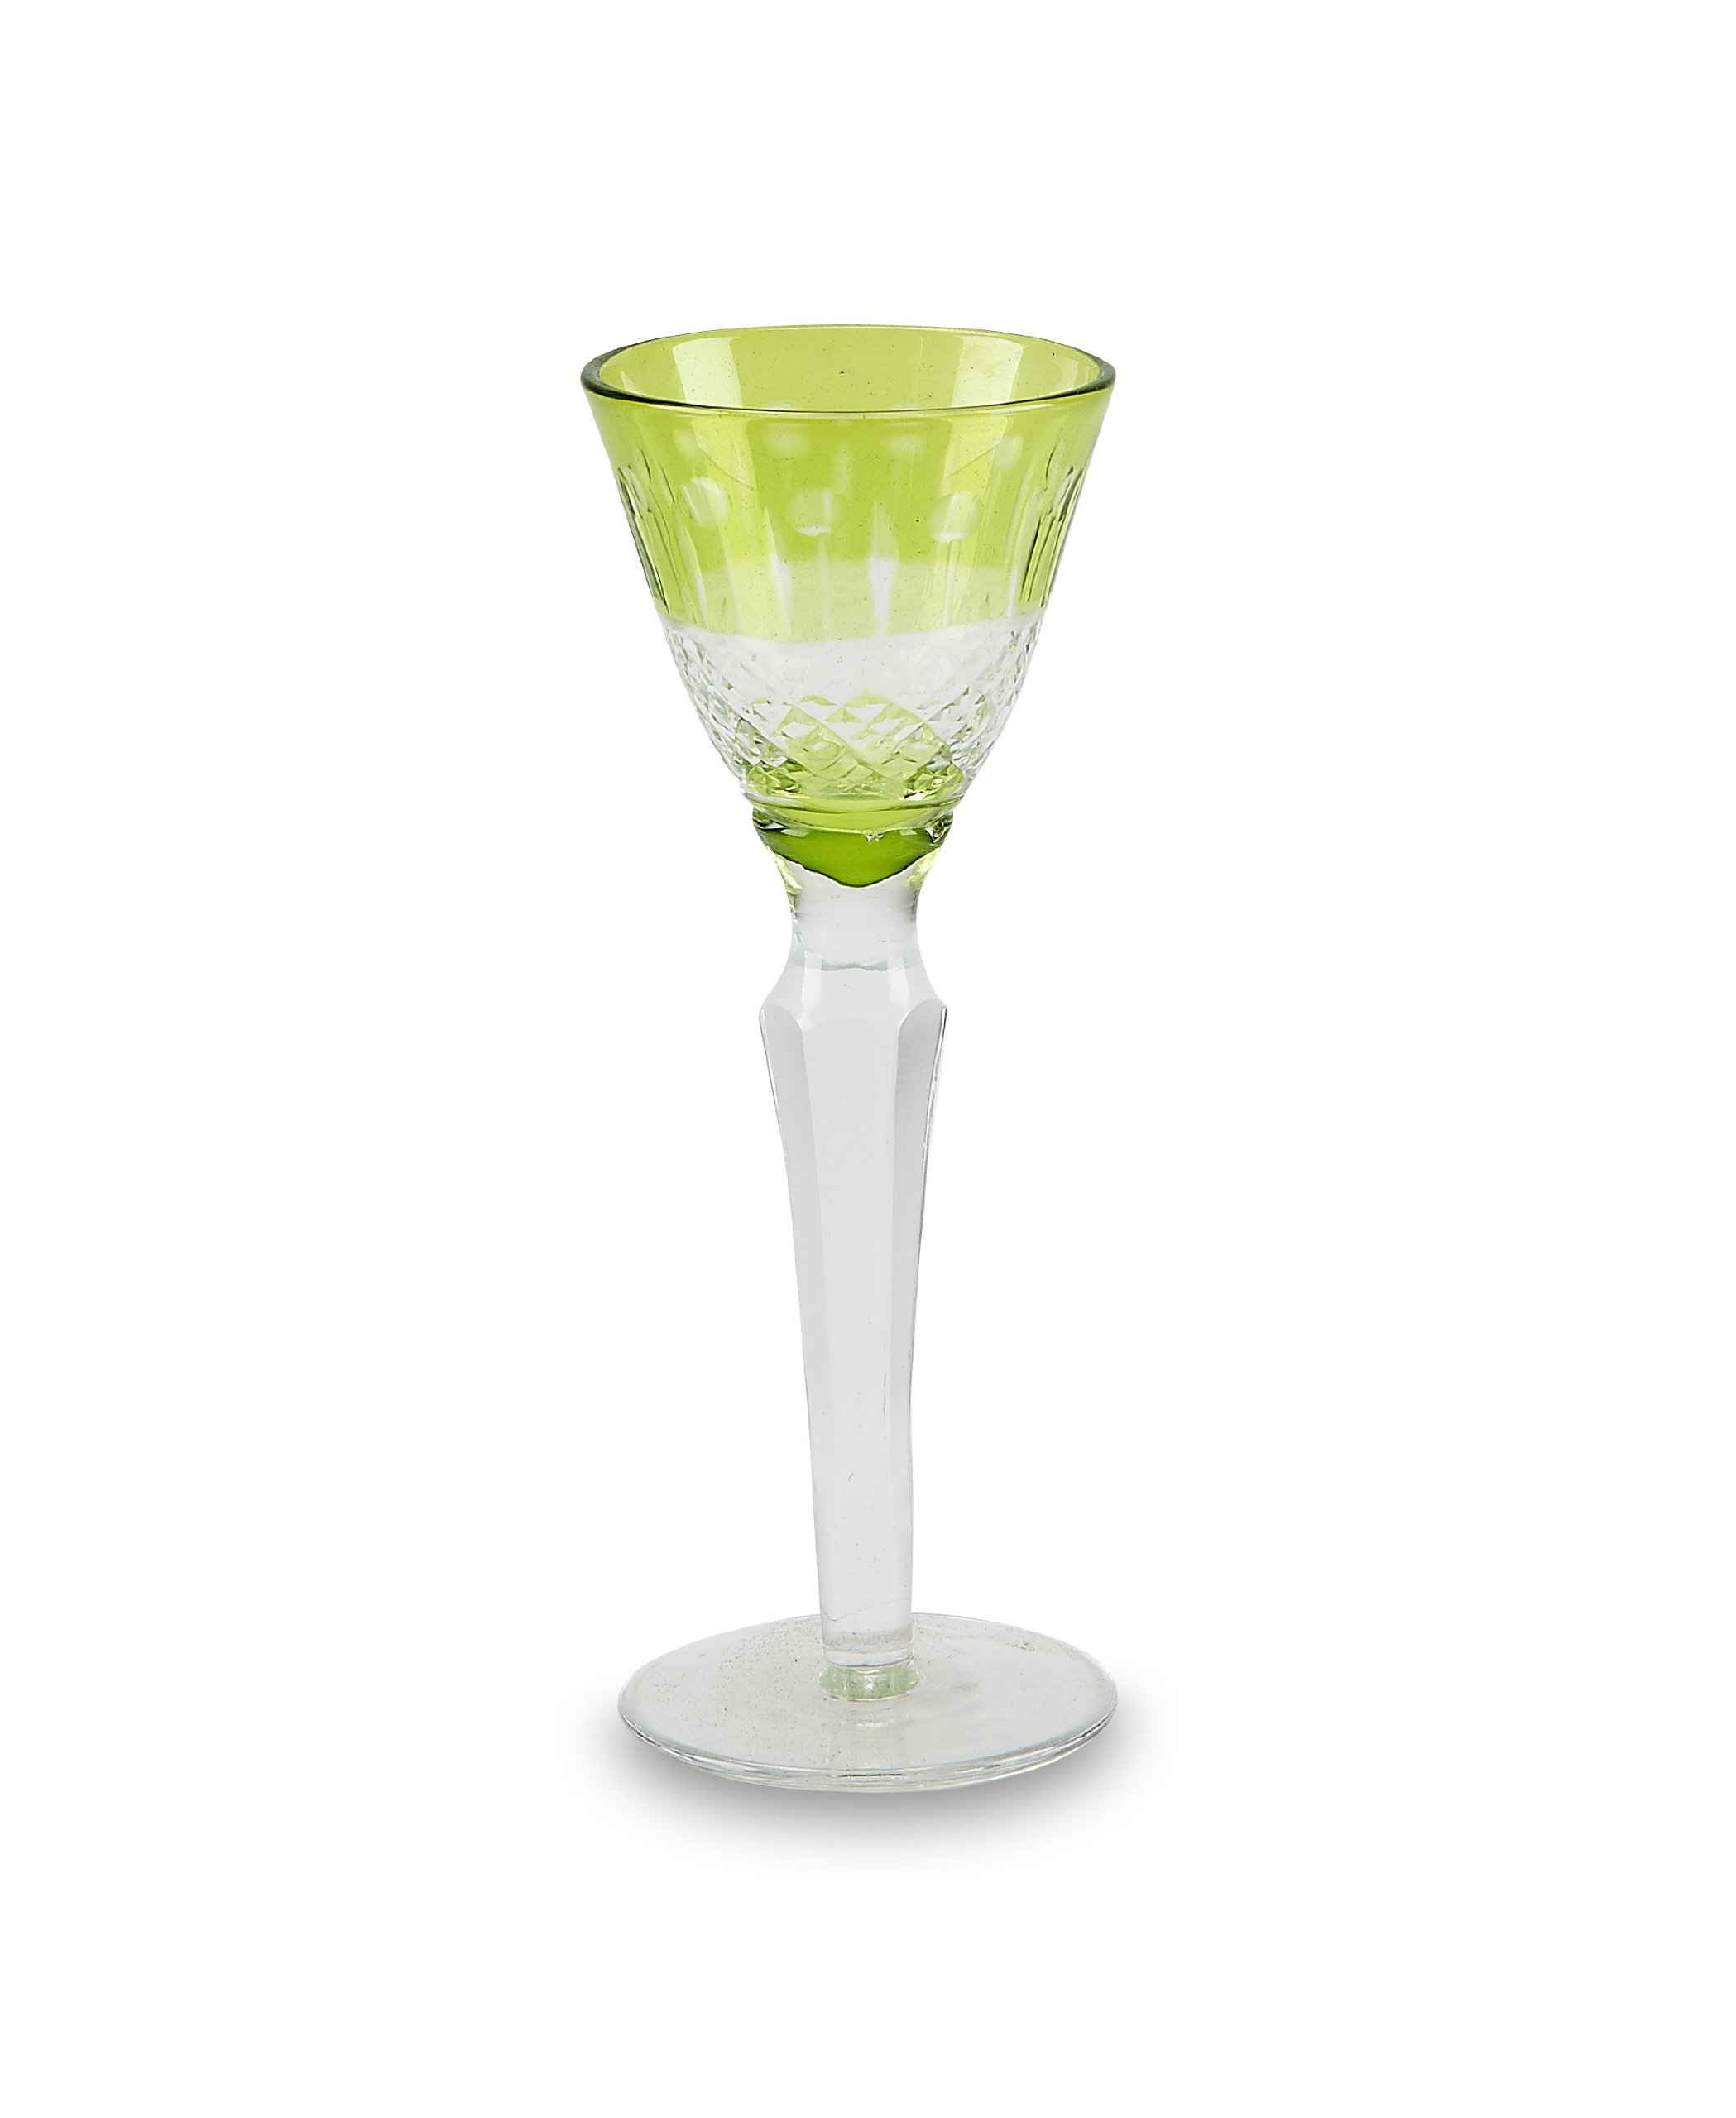 Impulse Glam Cordial Lime Glass, Case of 72